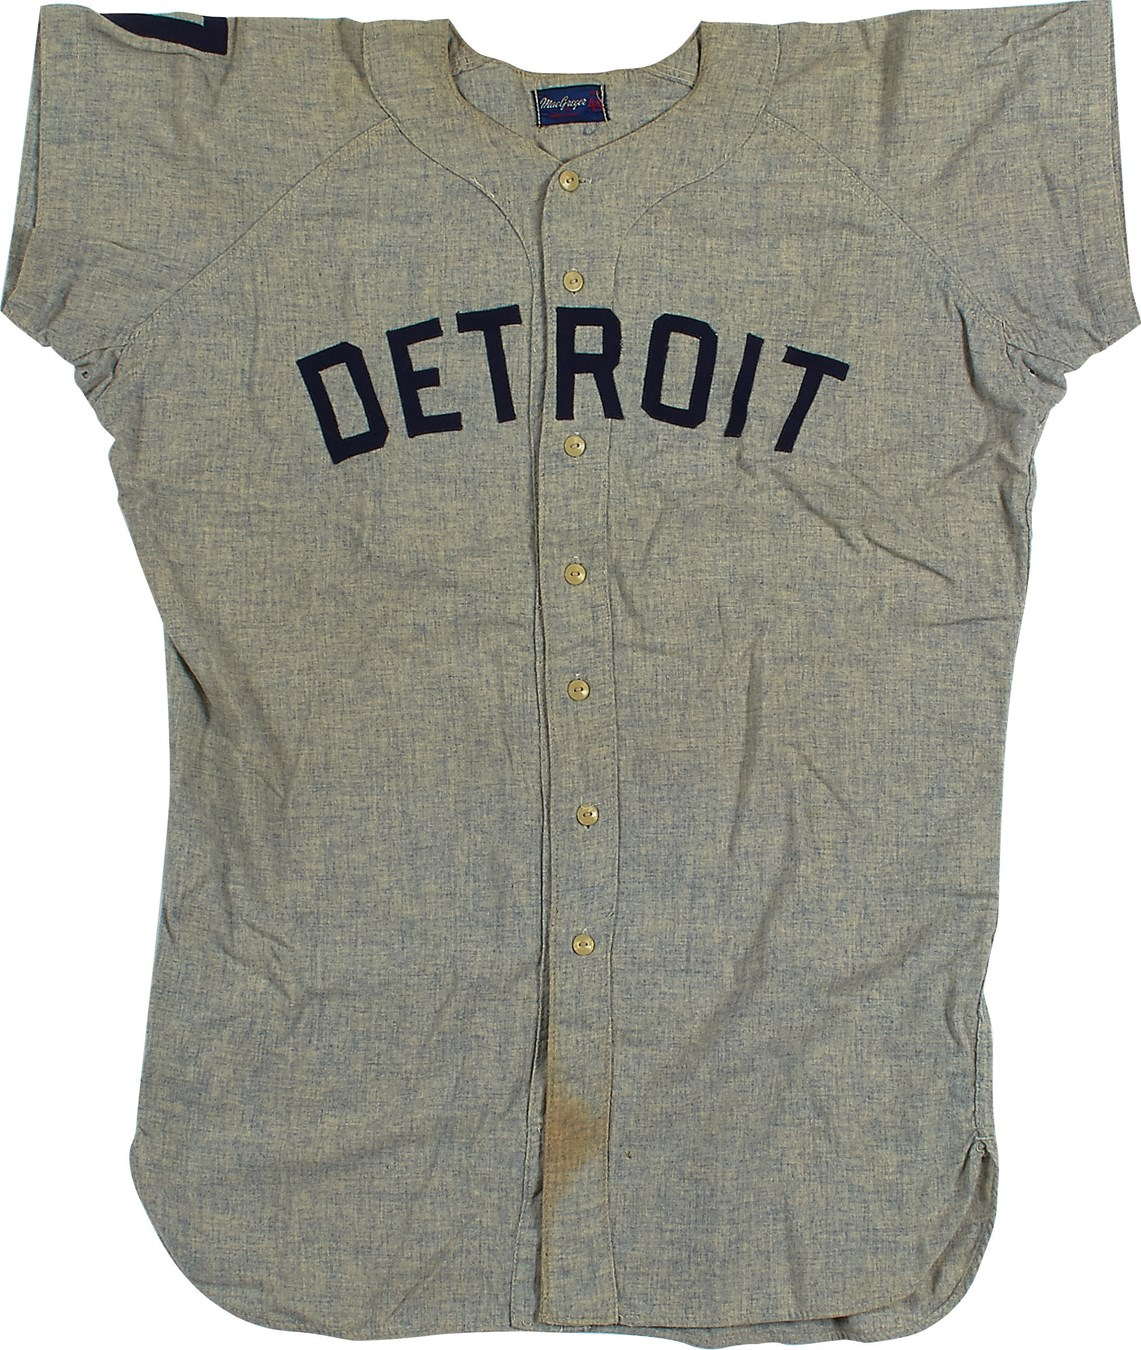 buy online 60338 6bd6e Lelands.com - Ty Cobb and Detroit Tigers - Past Sports and ...